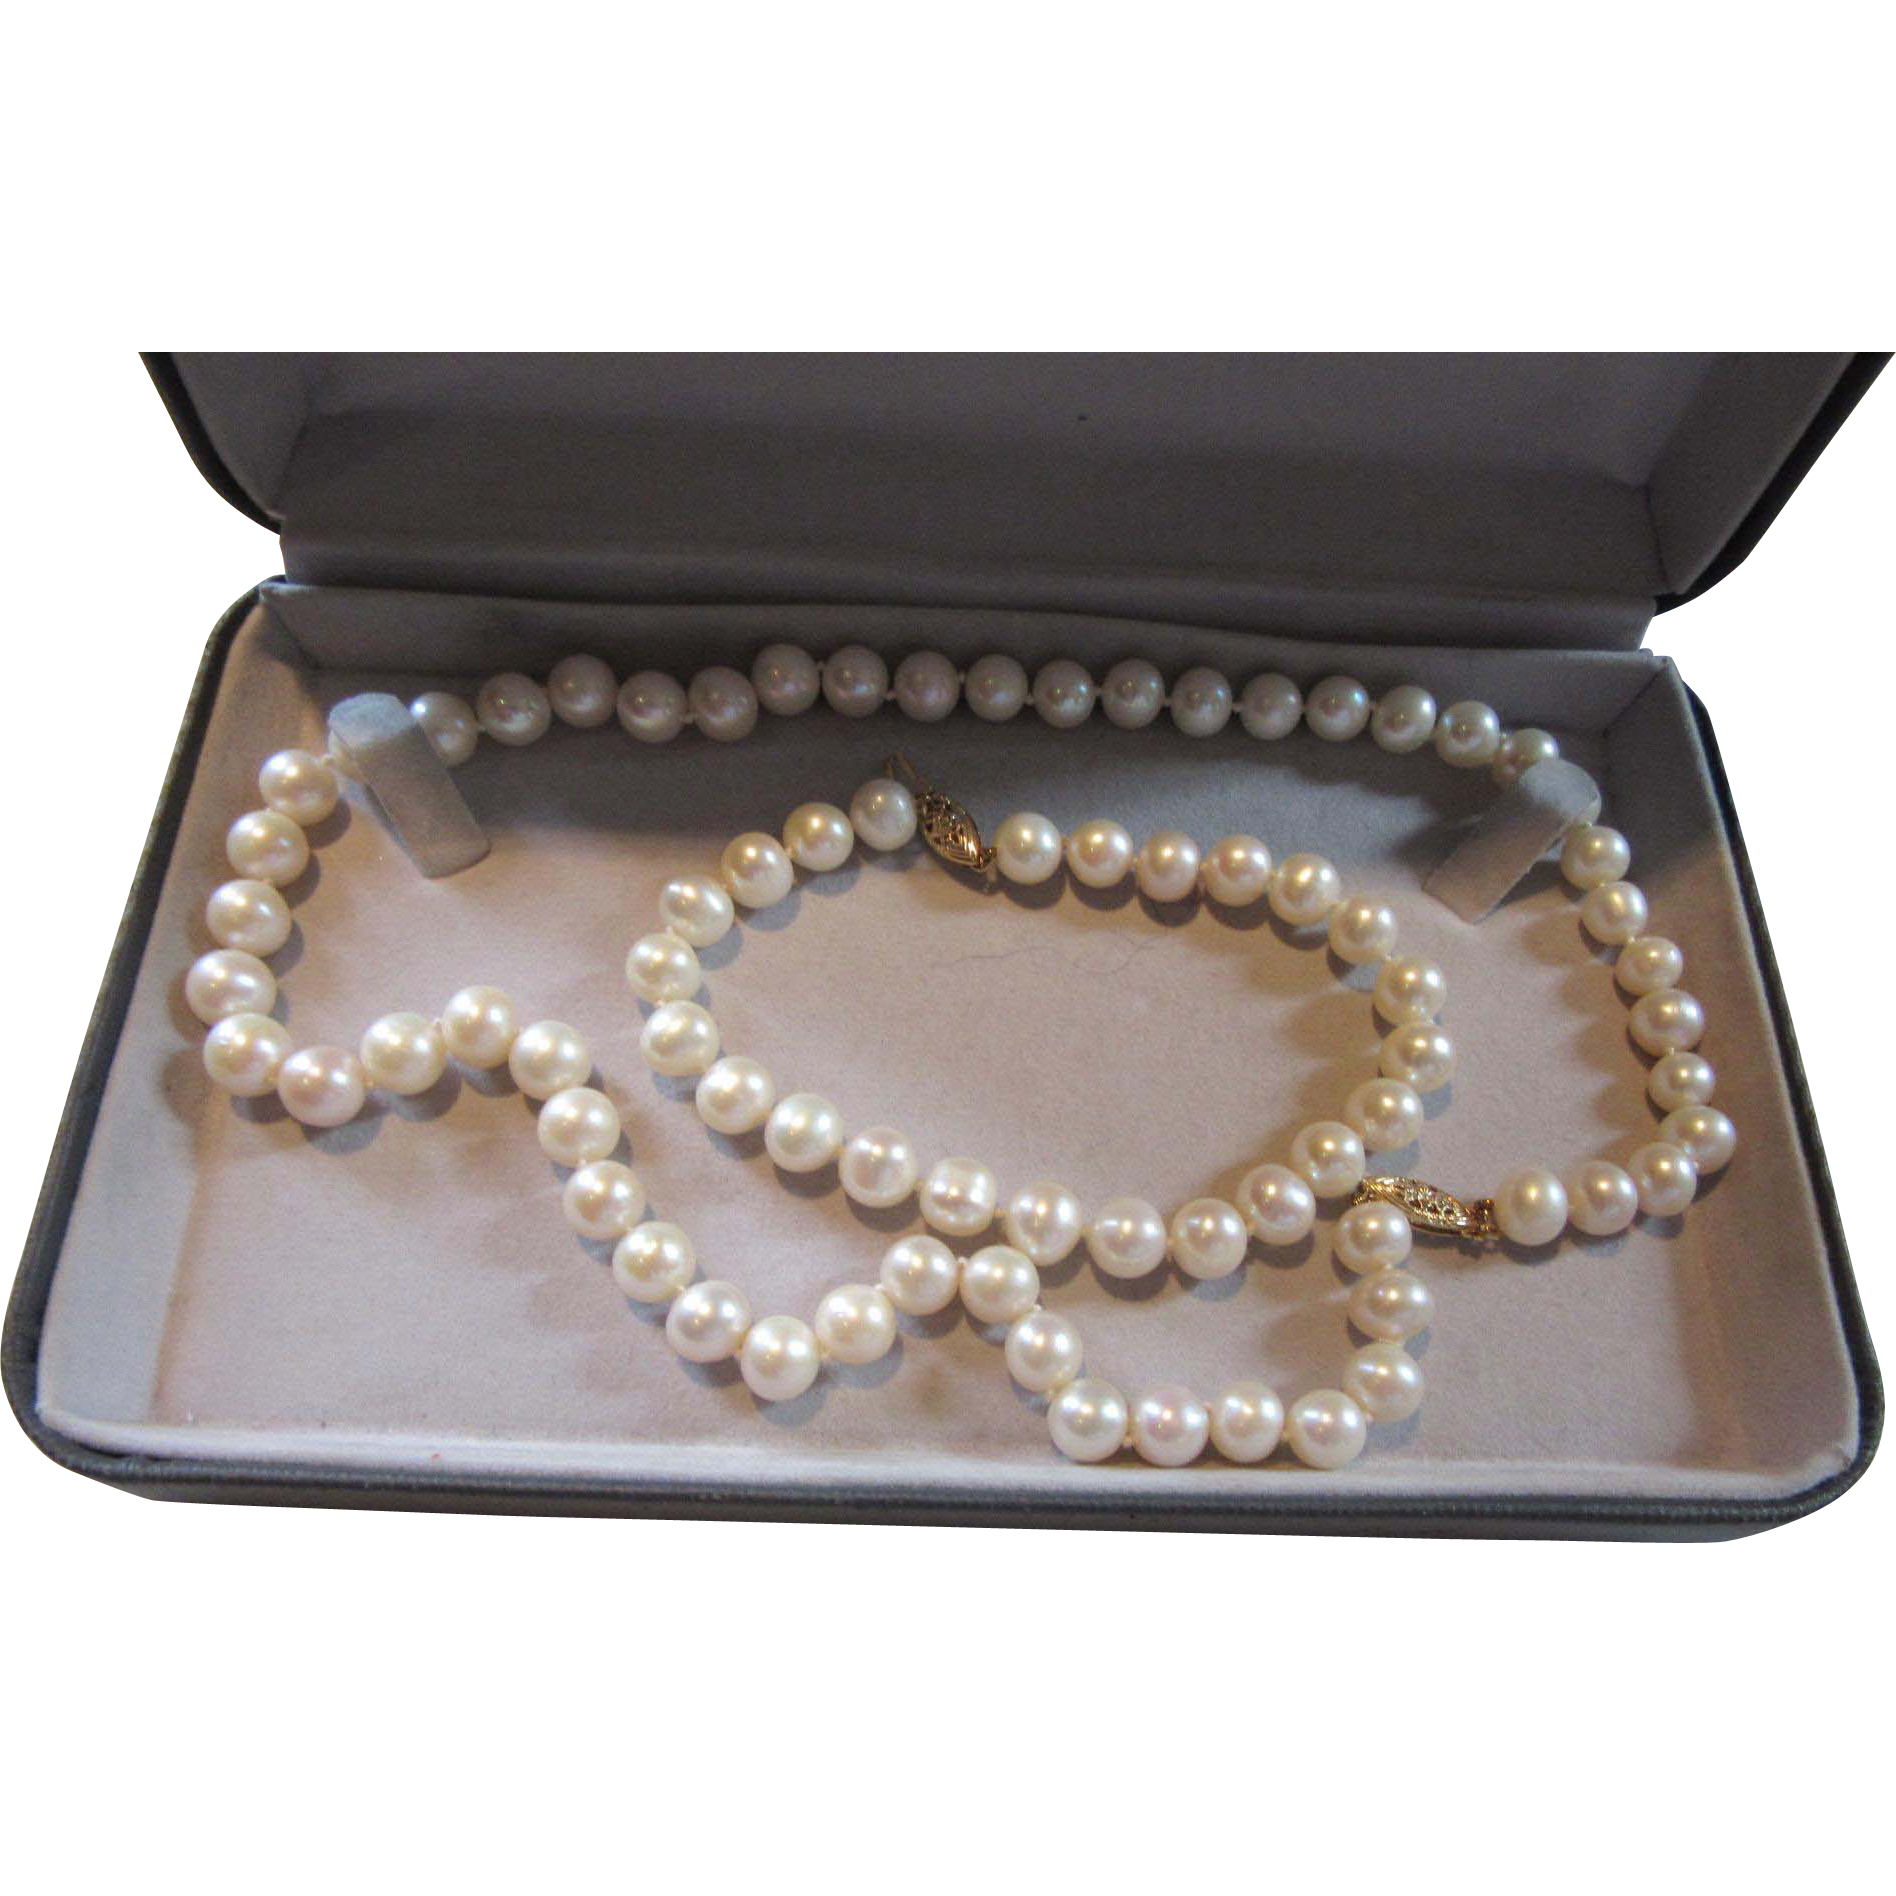 8mm Genuine Cultured Pearls Necklace Bracelet Set Fine Jewelry